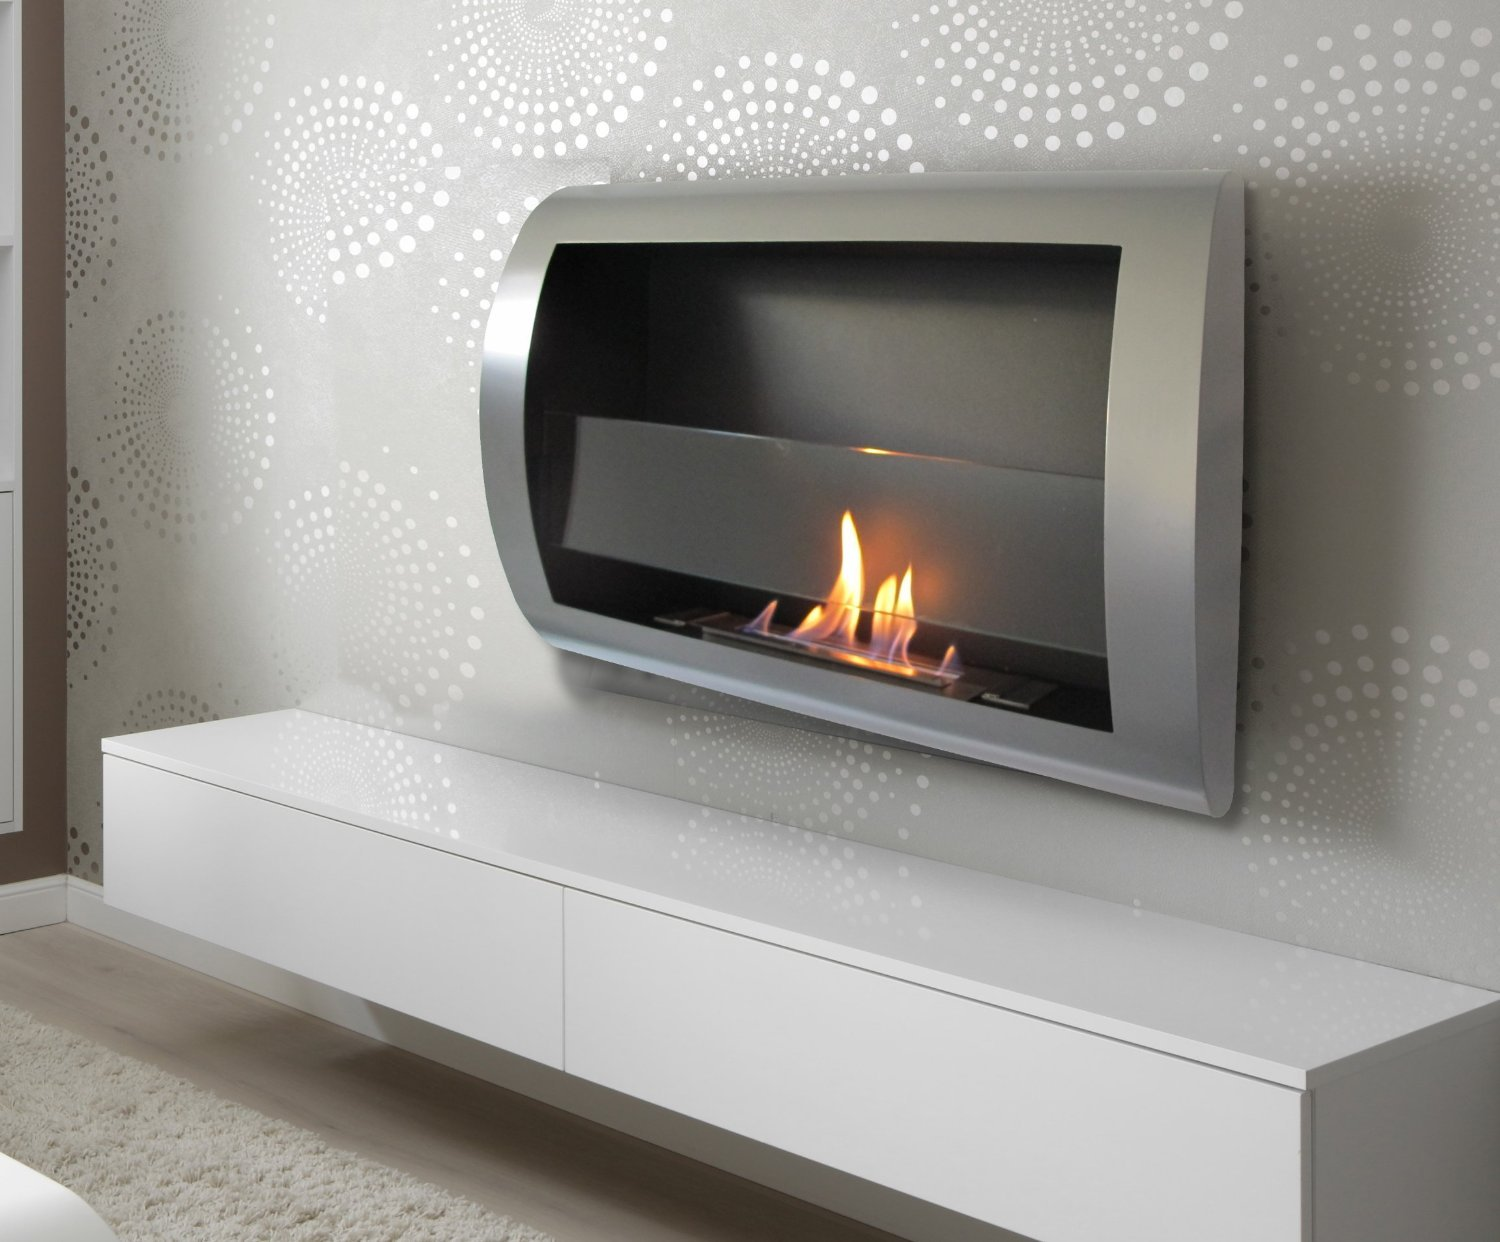 Chic Fireplaces Charleston Wall Mount Ventless Bio Ethanol Fireplace with Burner Insert, Grey Metal by Chic Fireplaces